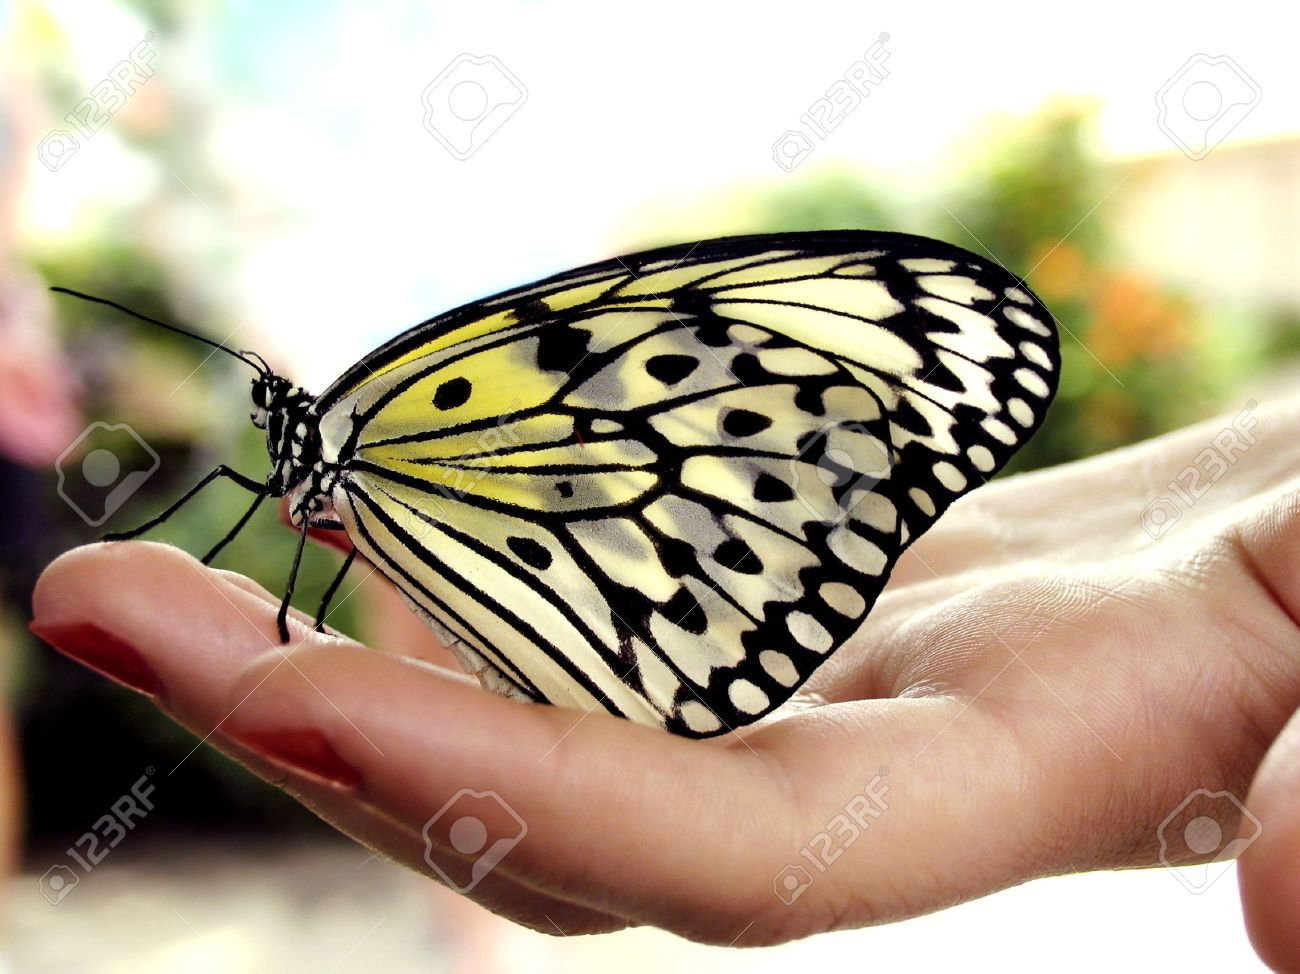 Butterfly resting on woman's hand Stock Photo - 3647219